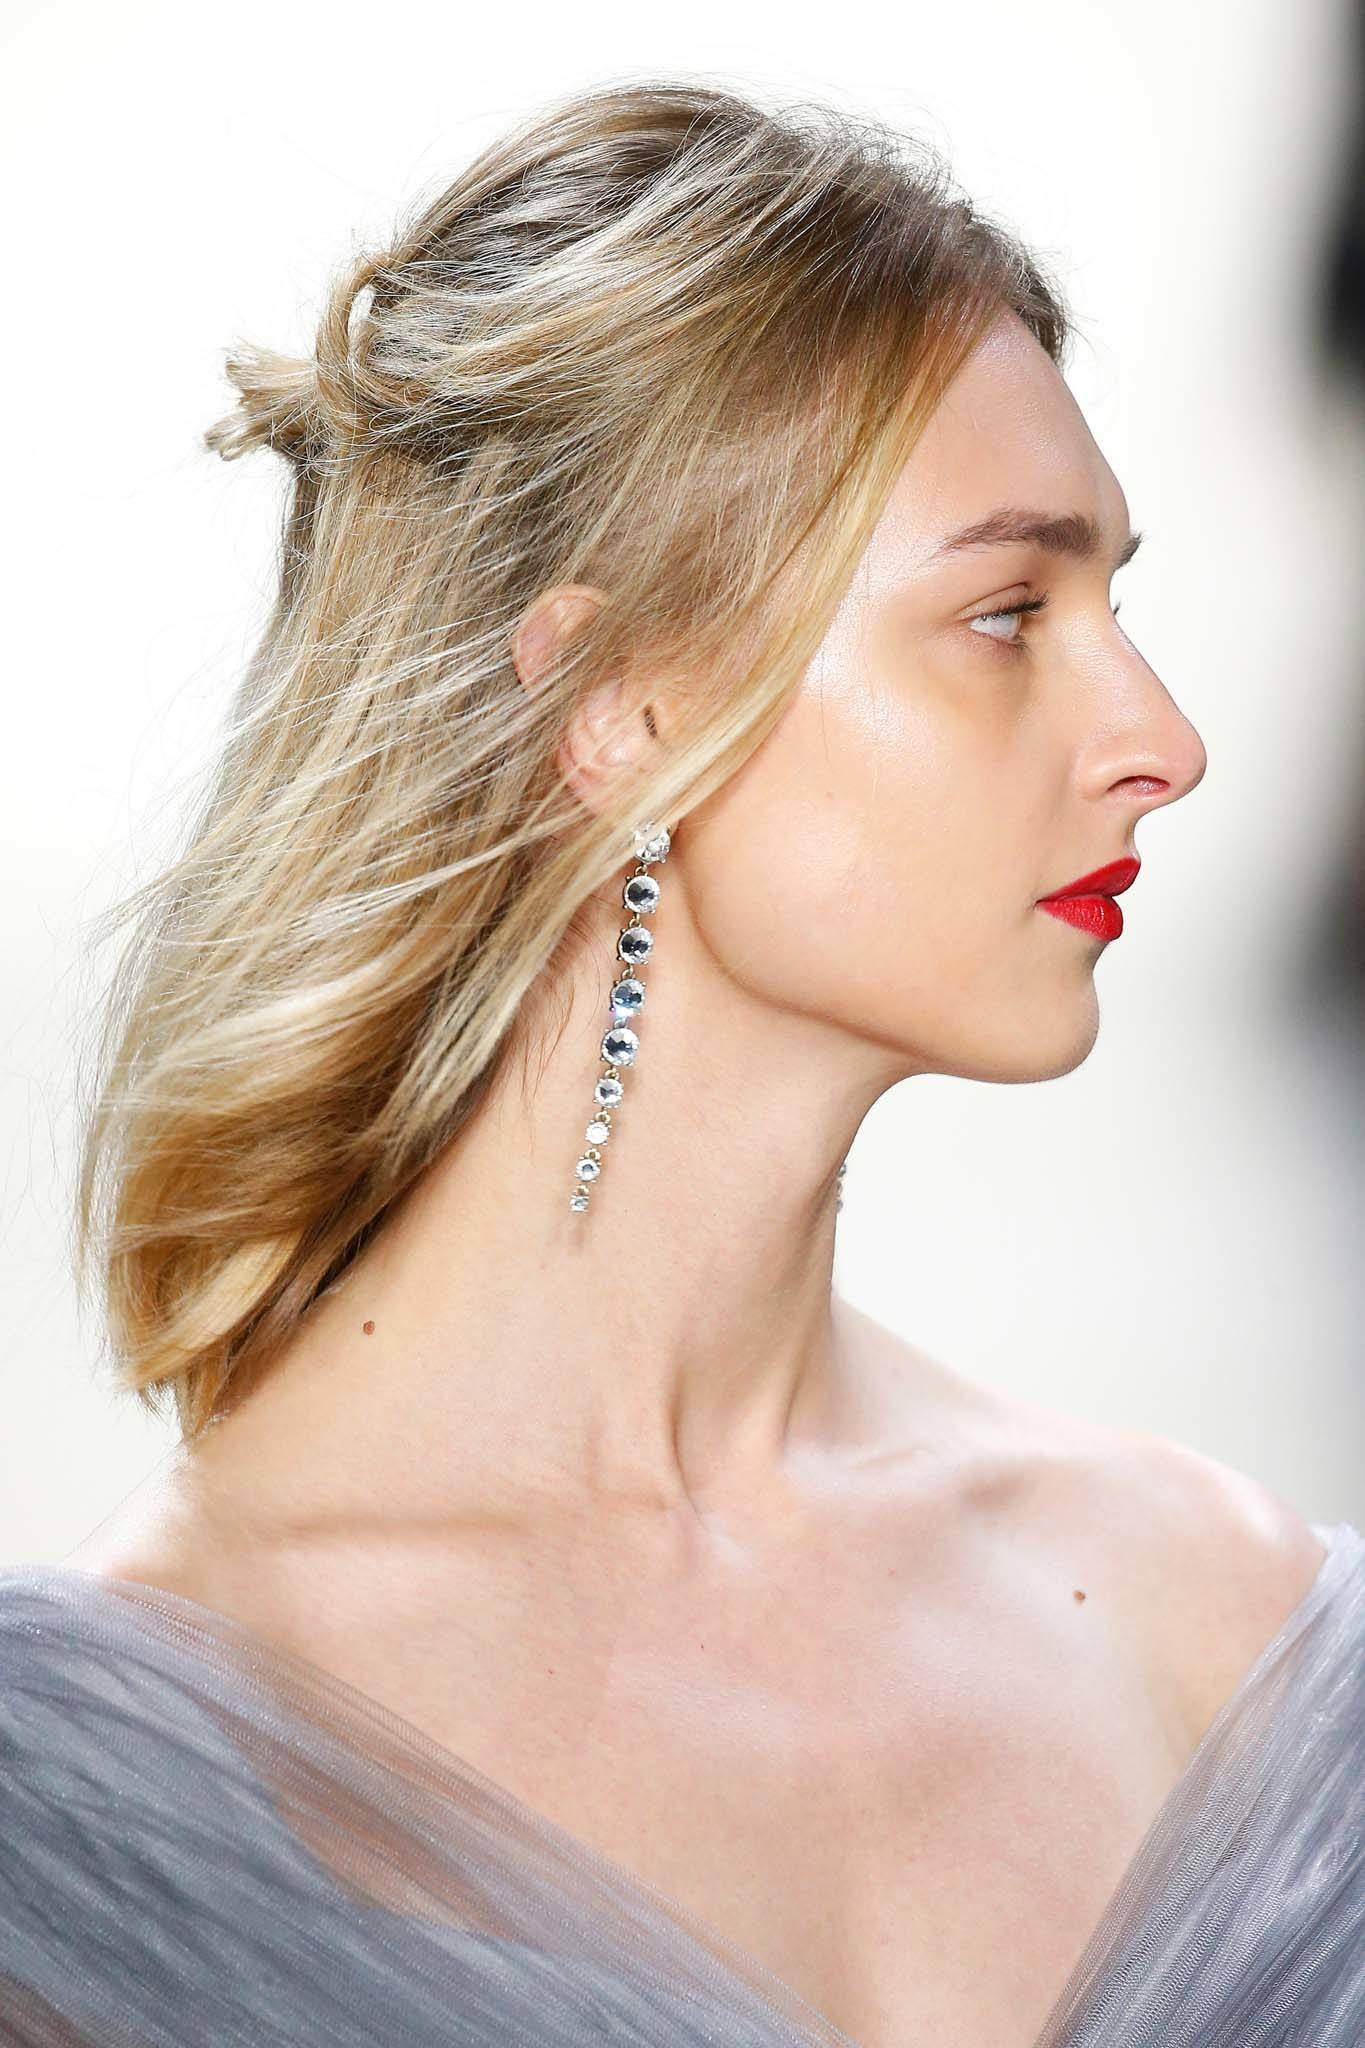 NYFW Catwalk Trends: Model on Tadashi Shoji FW18 runway with shoulder length blonde straight hair in half-up, half-down messy bun wearing red lipstick and diamond drop earrings.